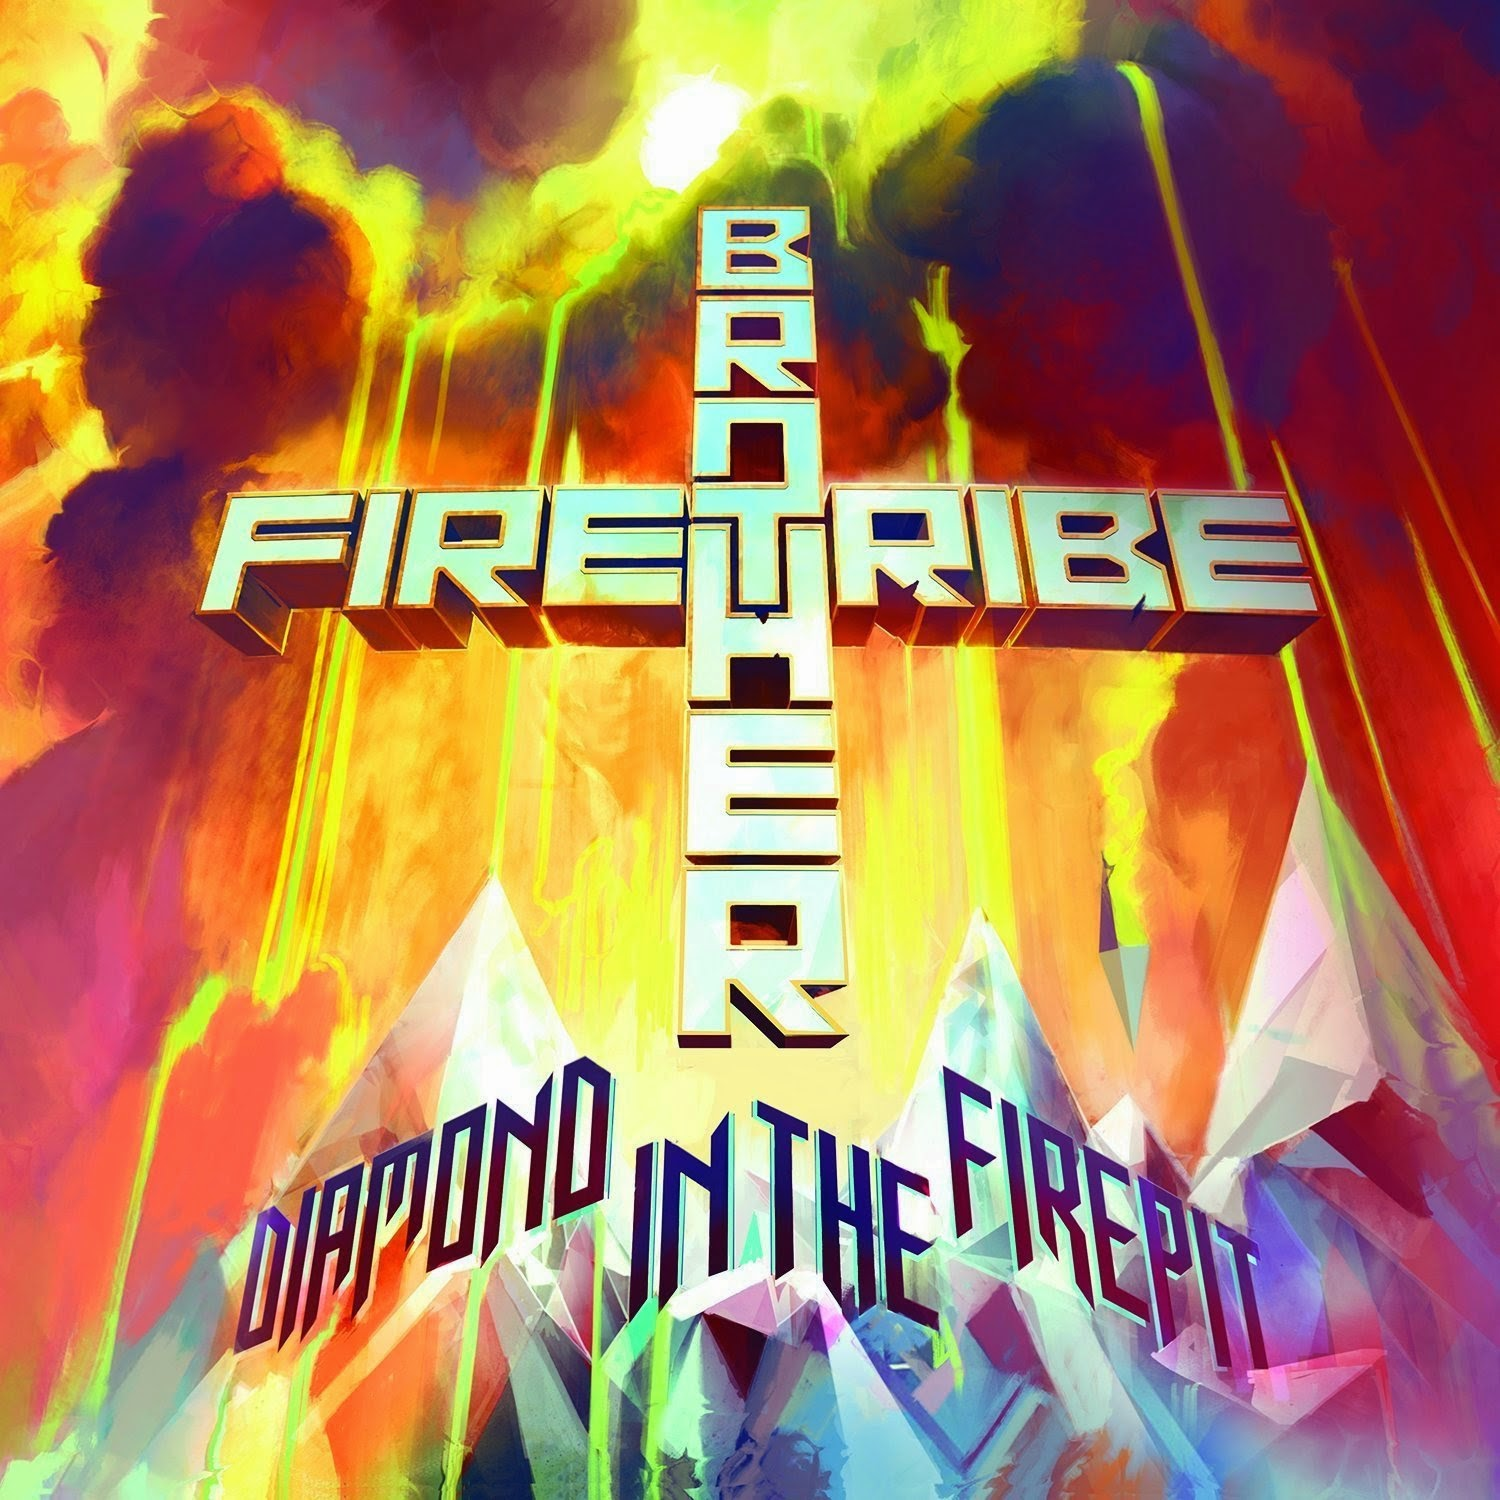 http://rock-and-metal-4-you.blogspot.de/2014/05/cd-review-brother-firetribe-diamond-in.html